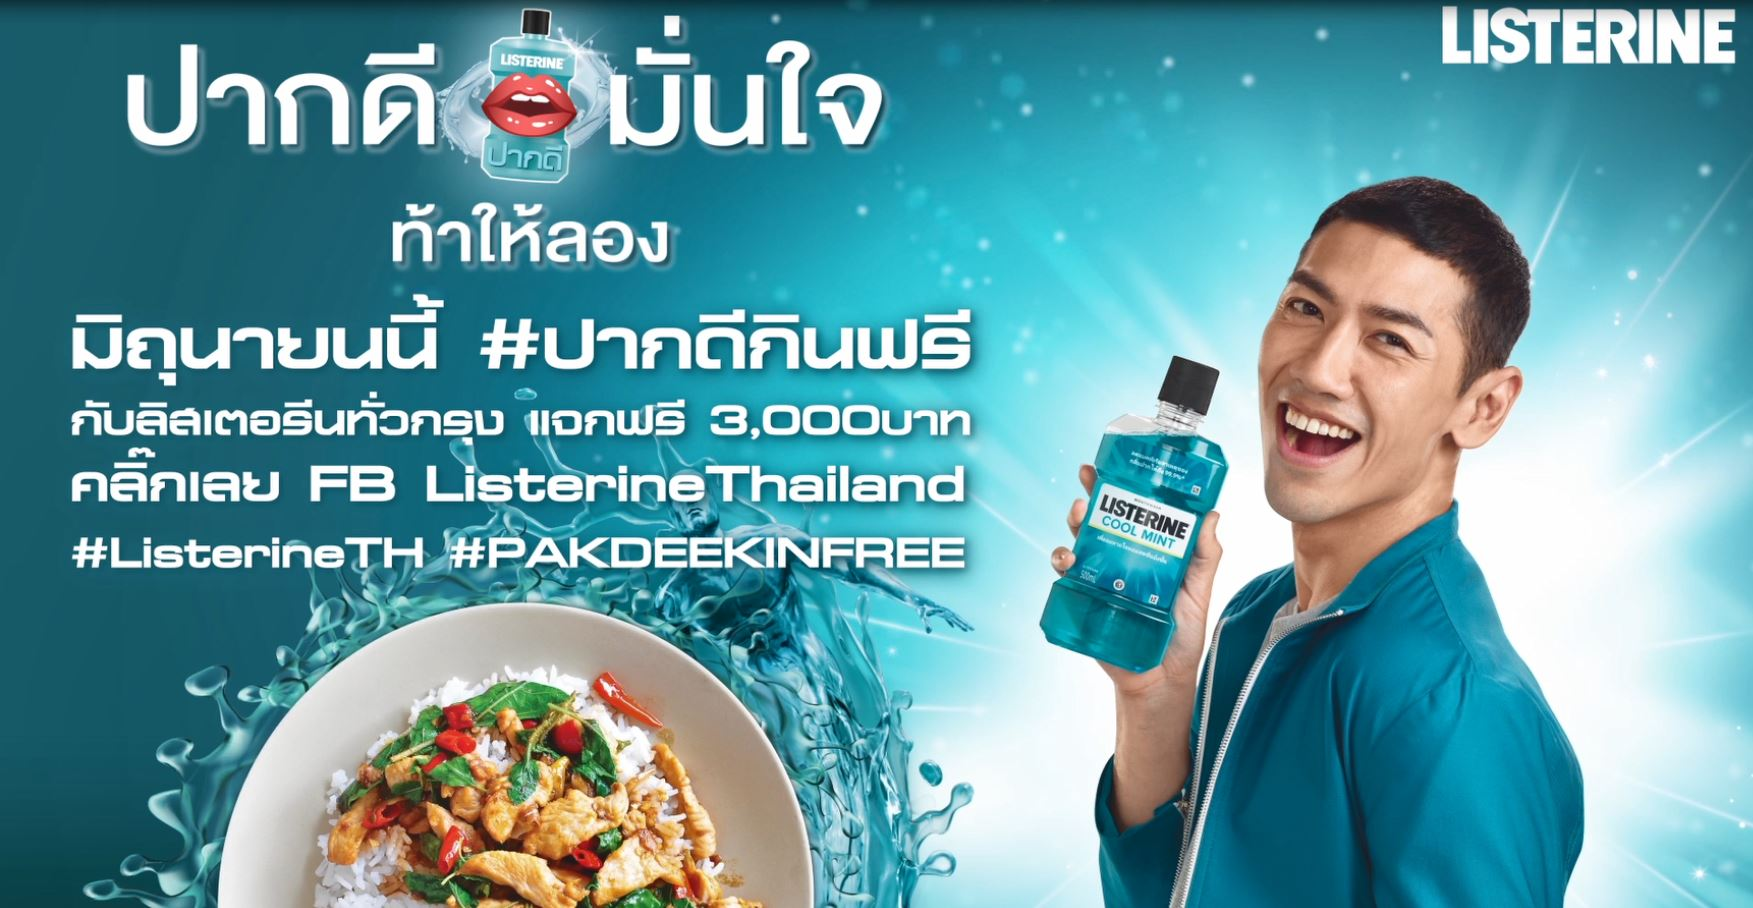 pakdeekinfree-website-banner.jpg